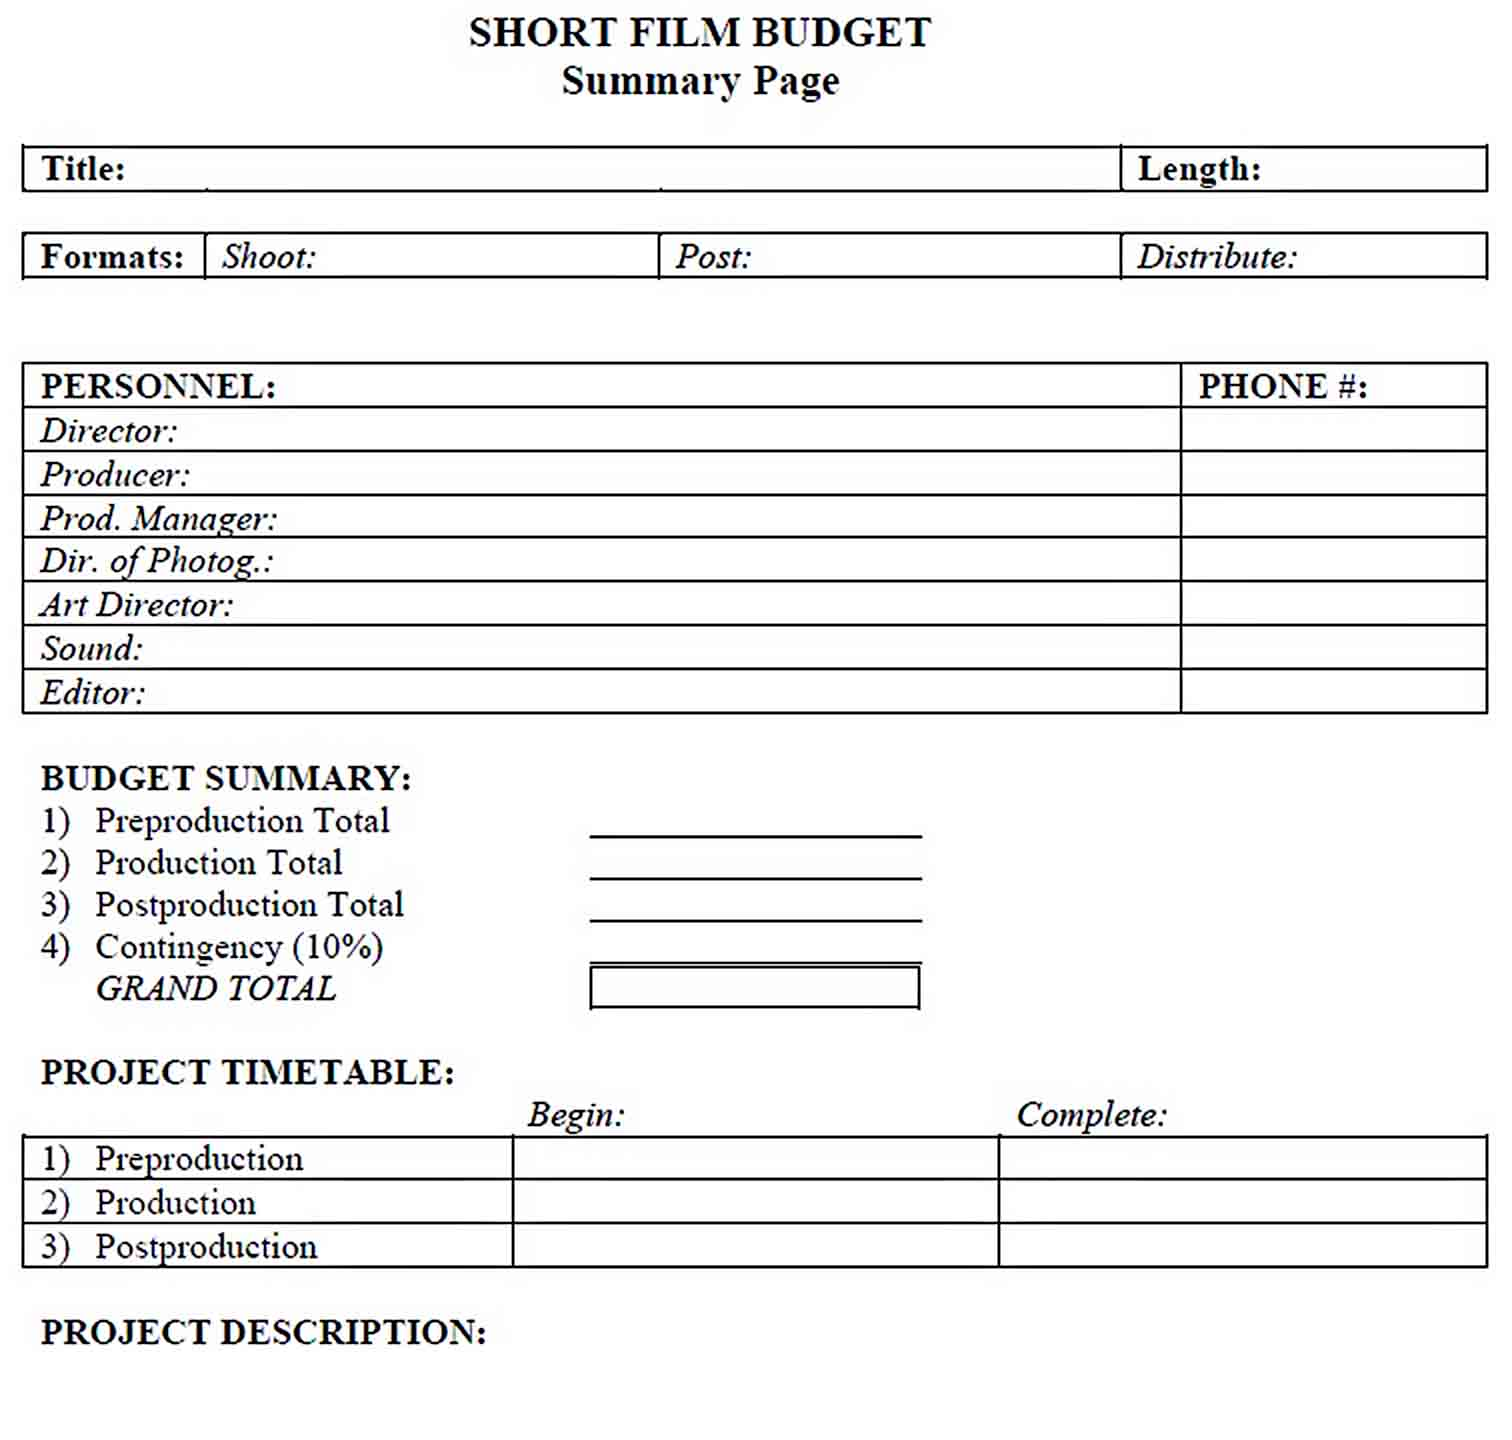 Short Film Budget Template sample 1